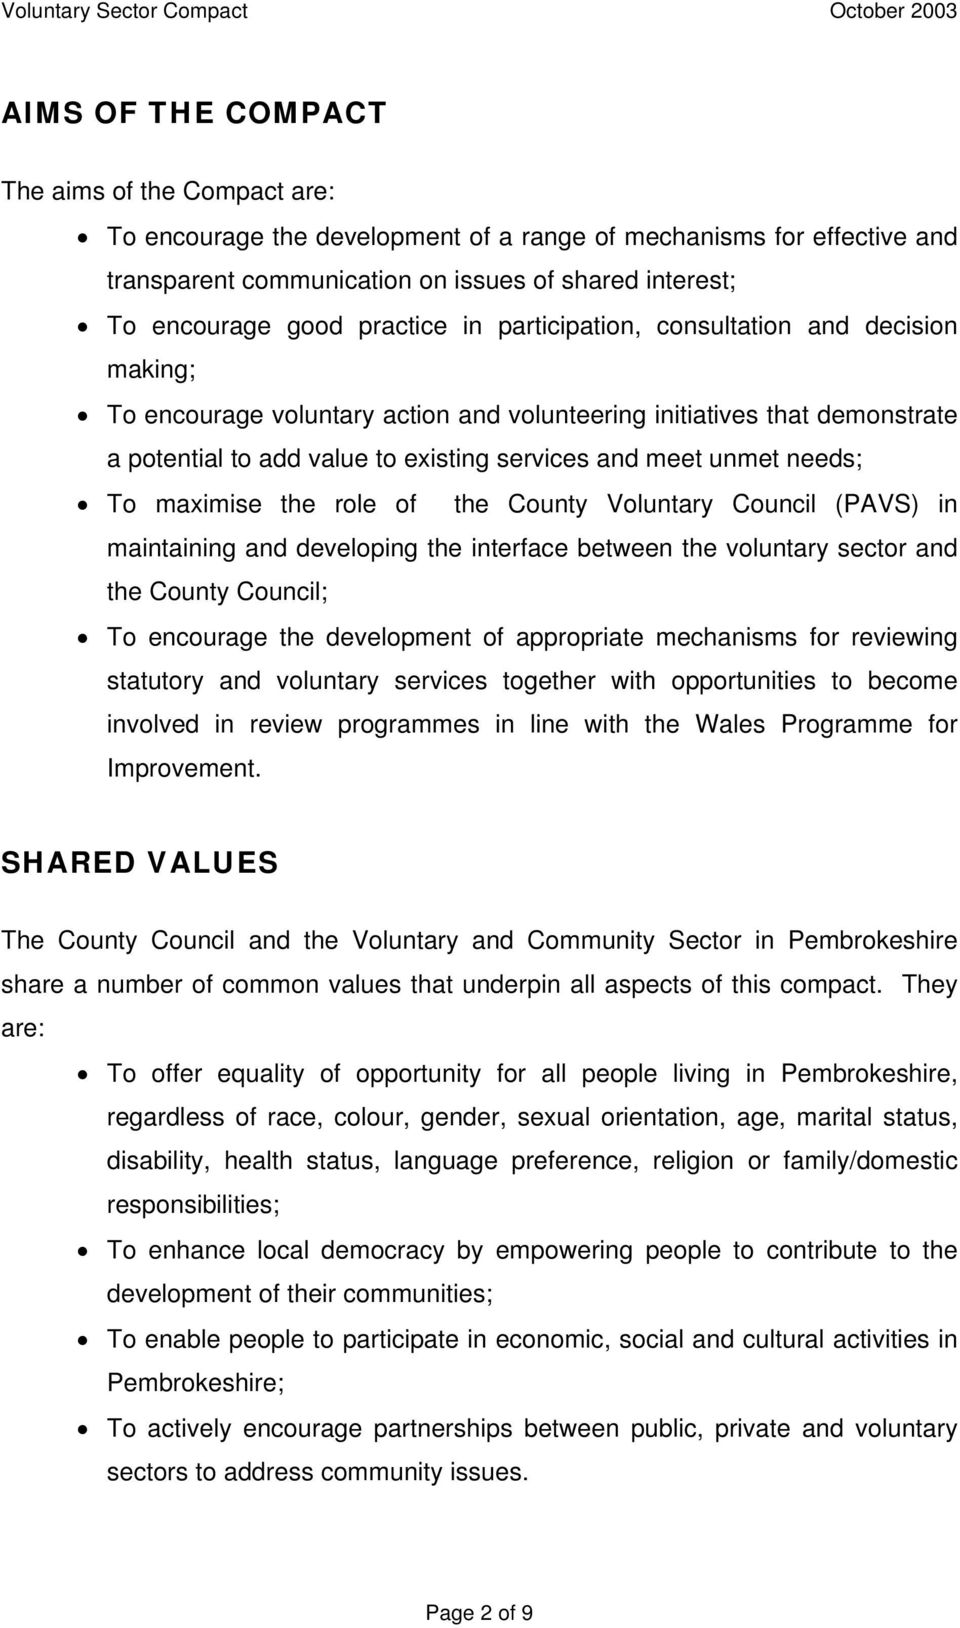 needs; To maximise the role of the County Voluntary Council (PAVS) in maintaining and developing the interface between the voluntary sector and the County Council; To encourage the development of